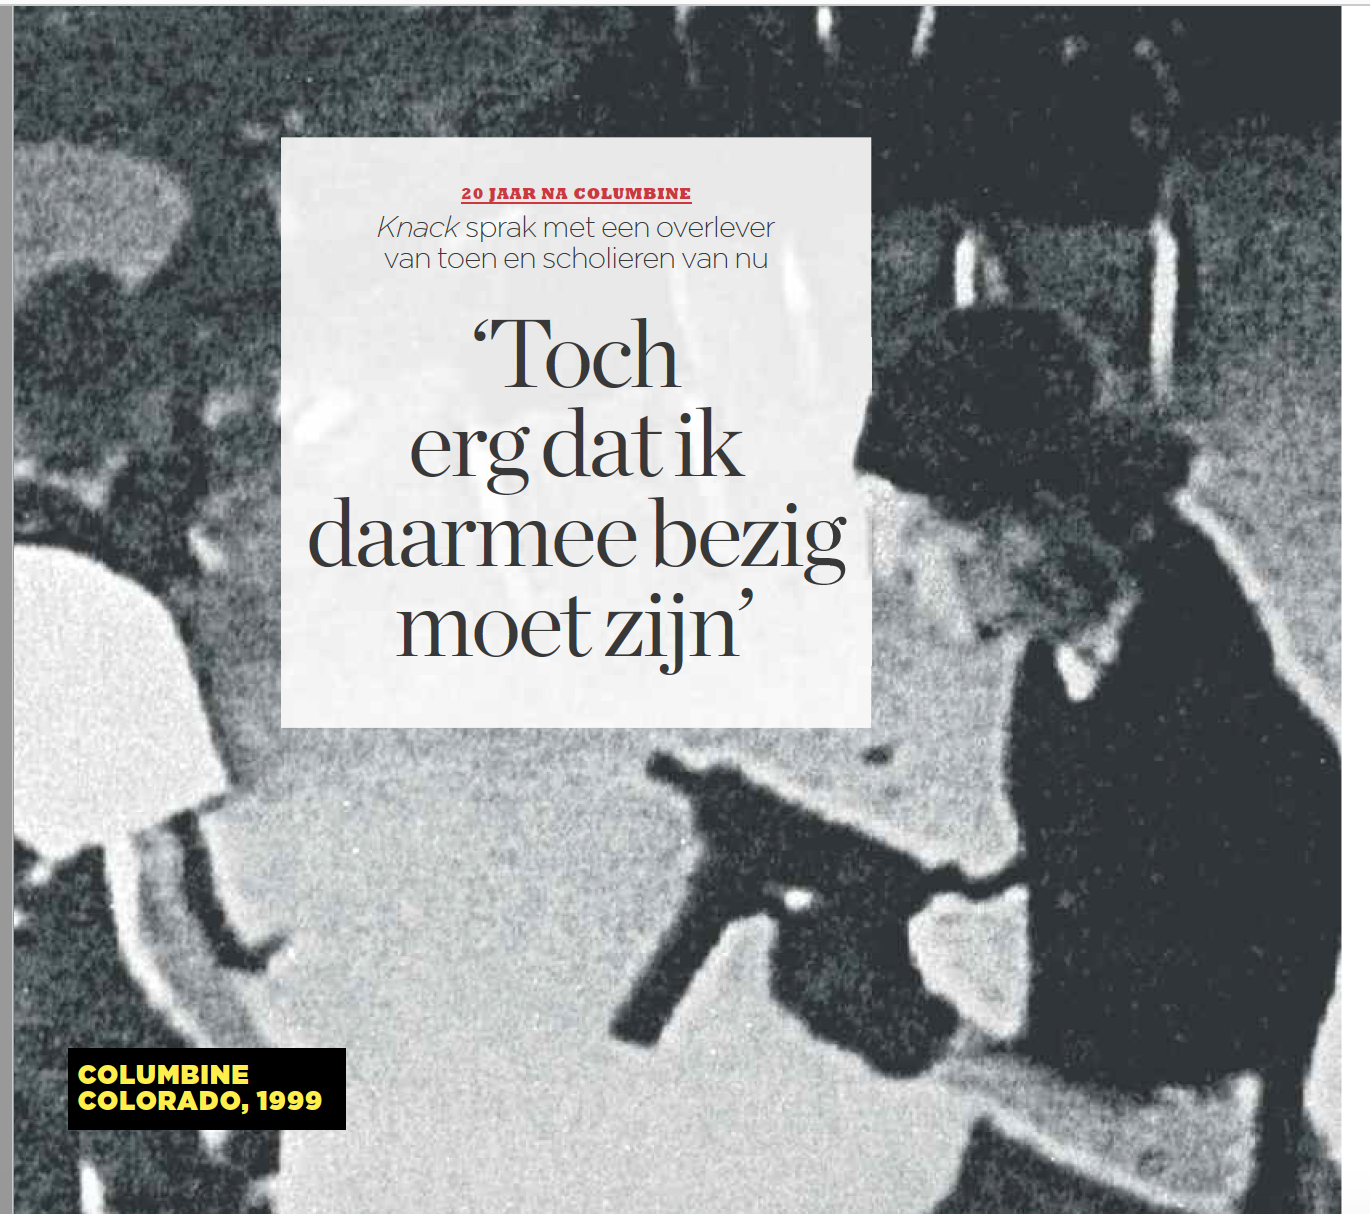 The 20th anniversary of the Columbine Shooting - My article about the impact of mass shootings on schools, students and communities in the US. Published in Knack magazine, April 23, 2019 (article in Dutch).